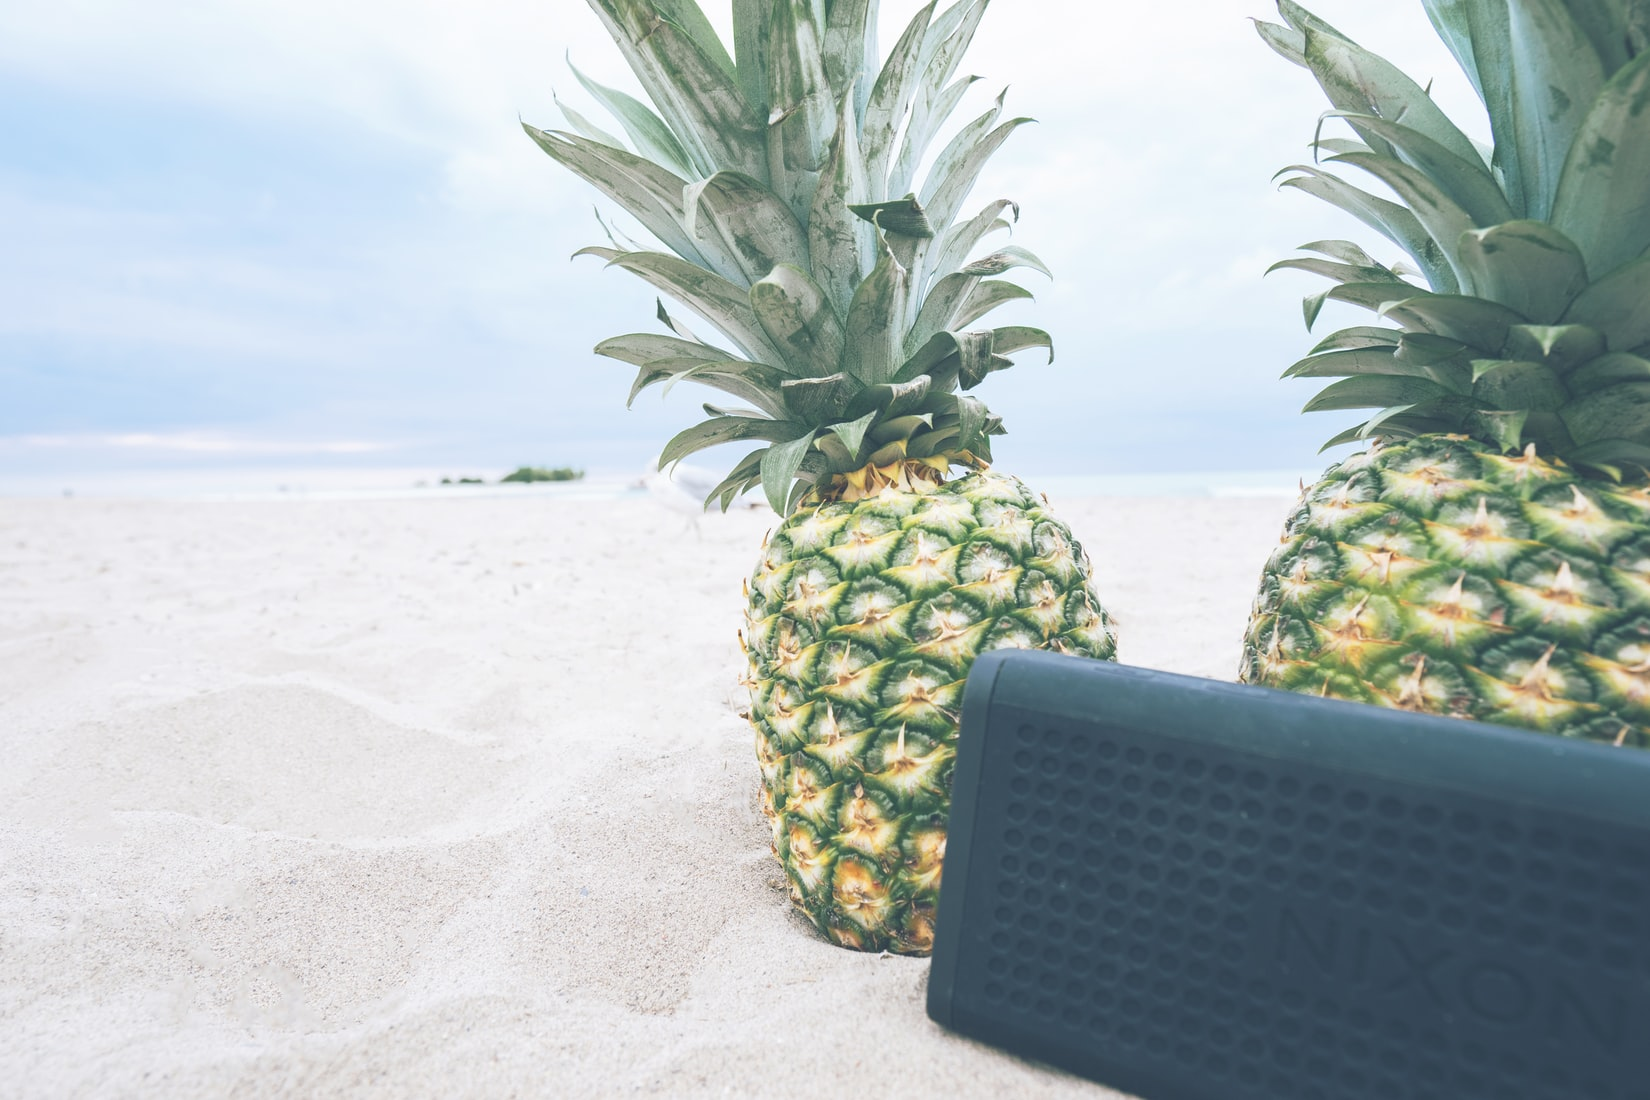 Black portable Nixon speaker next to two pineapples on sand